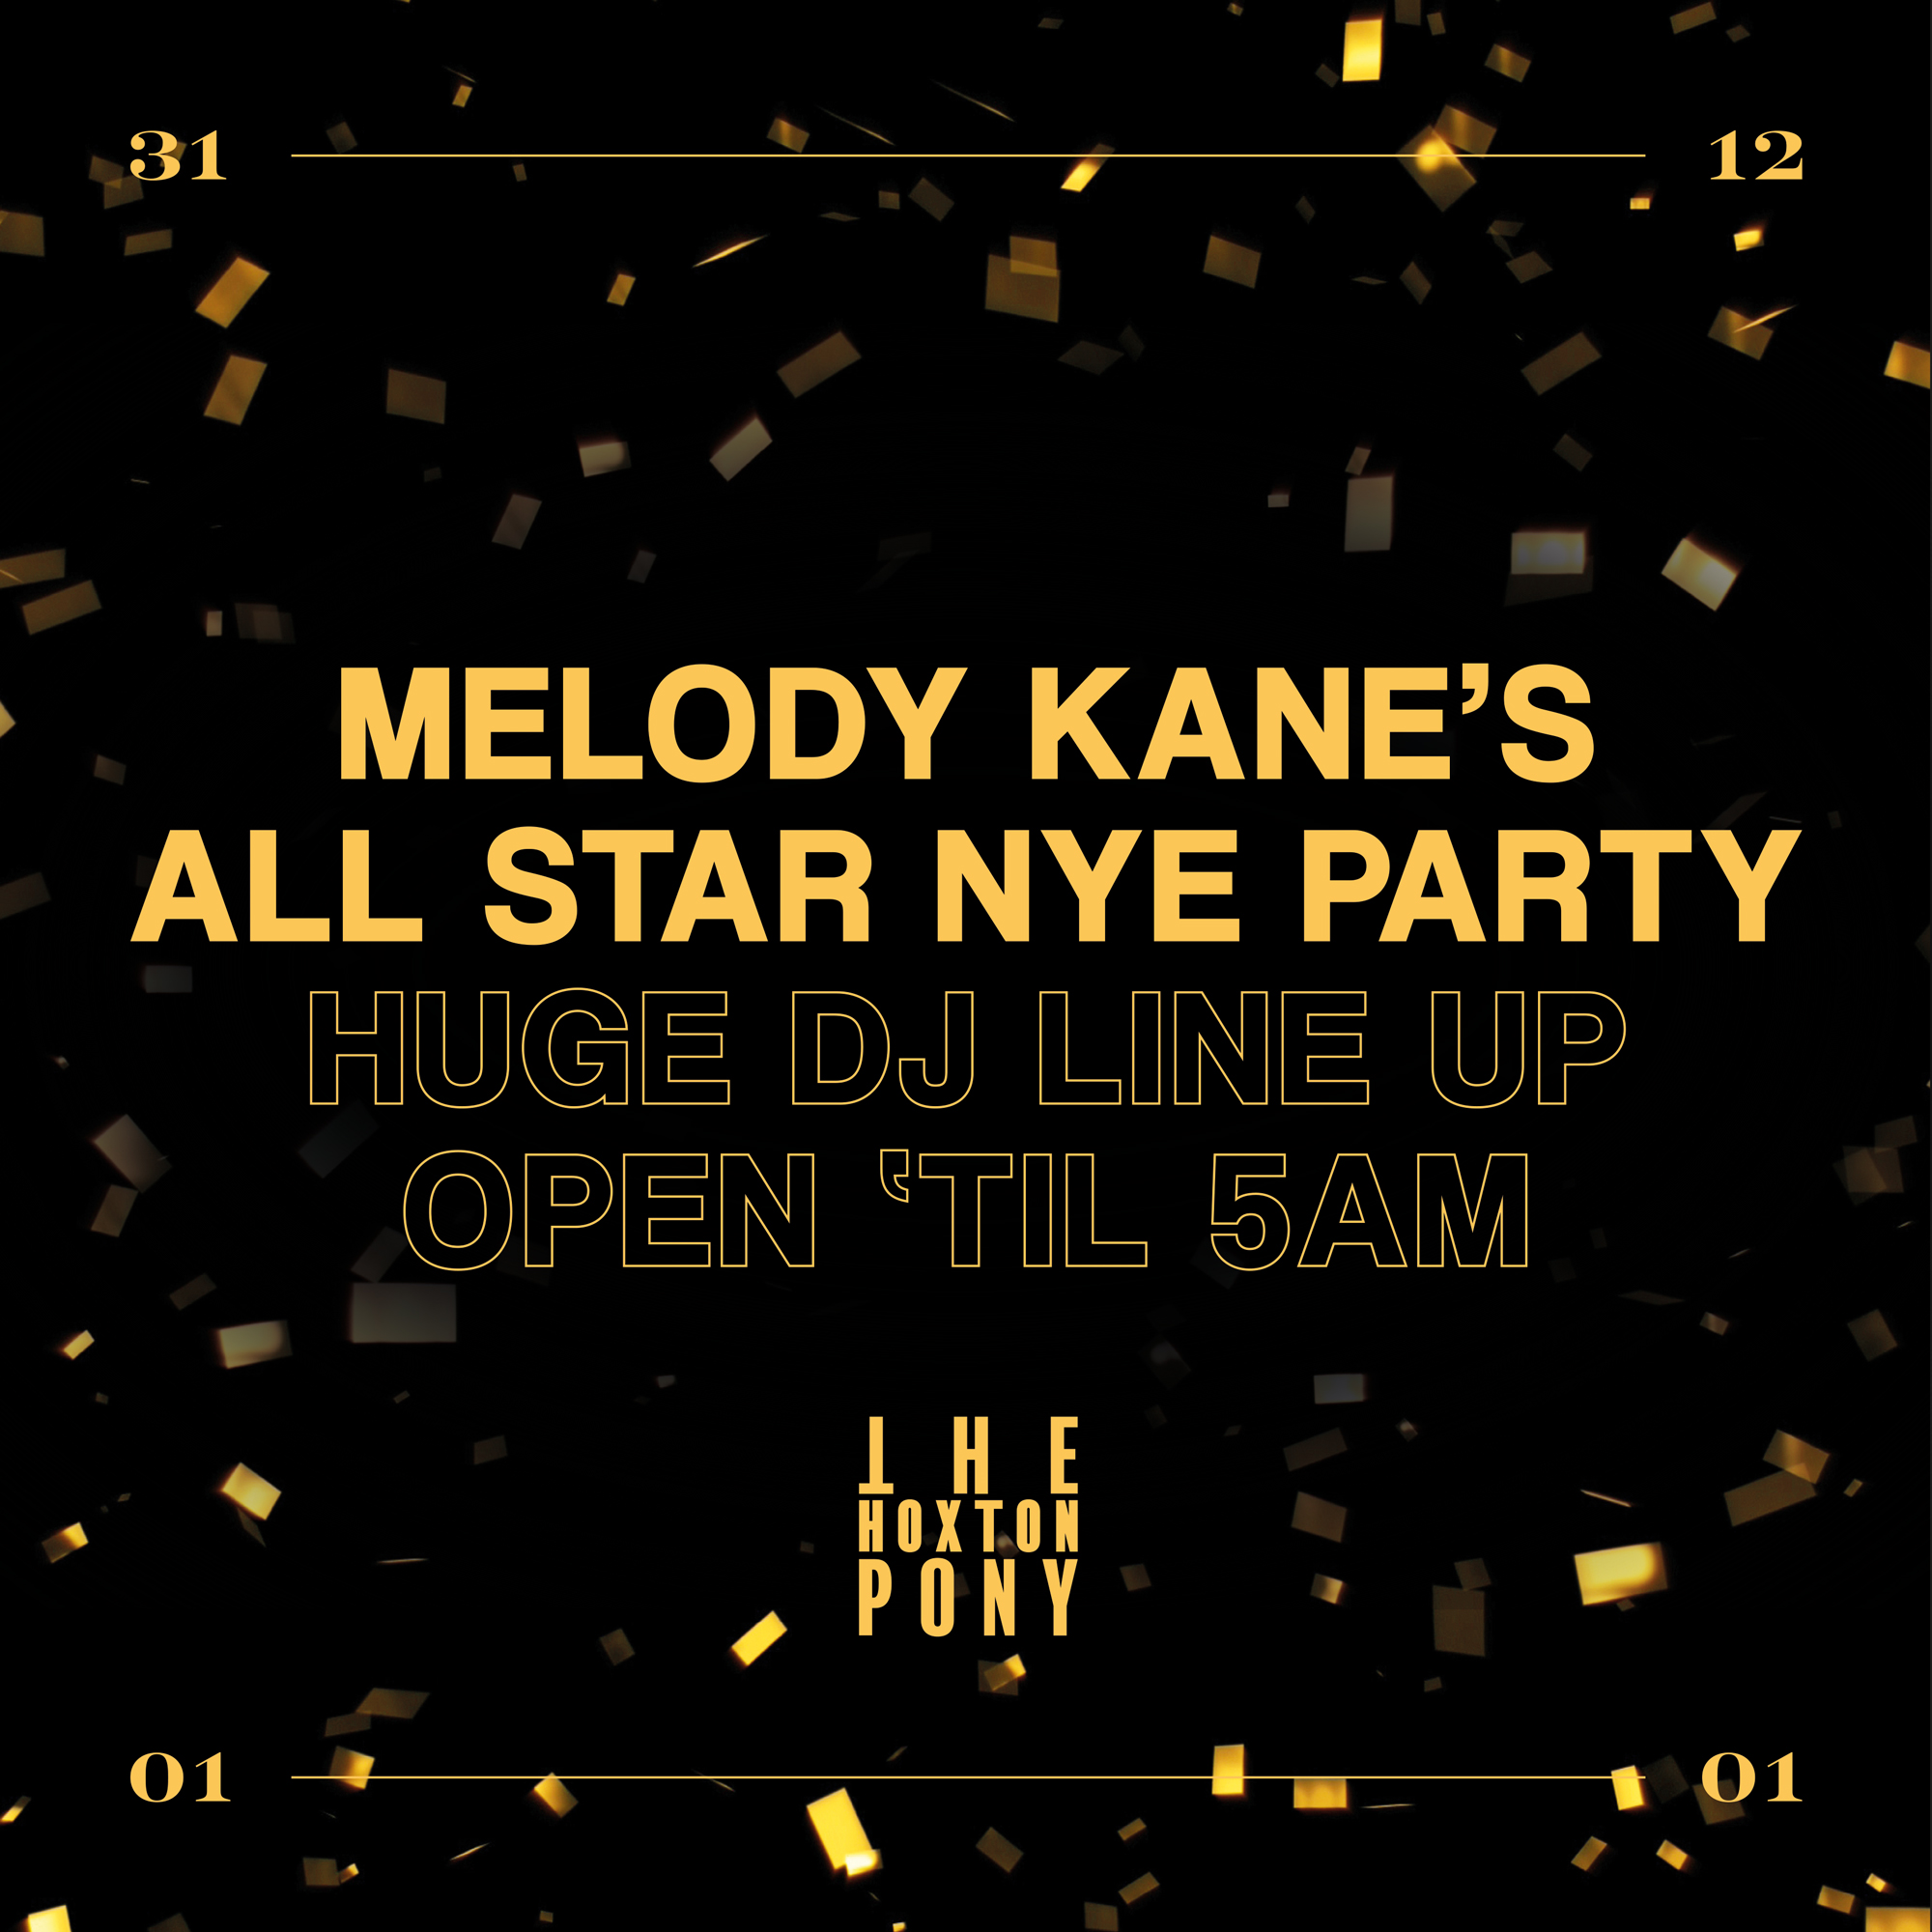 MELODY KANE'S ALL-STAR NYE PARTY @ THE HOXTON PONY